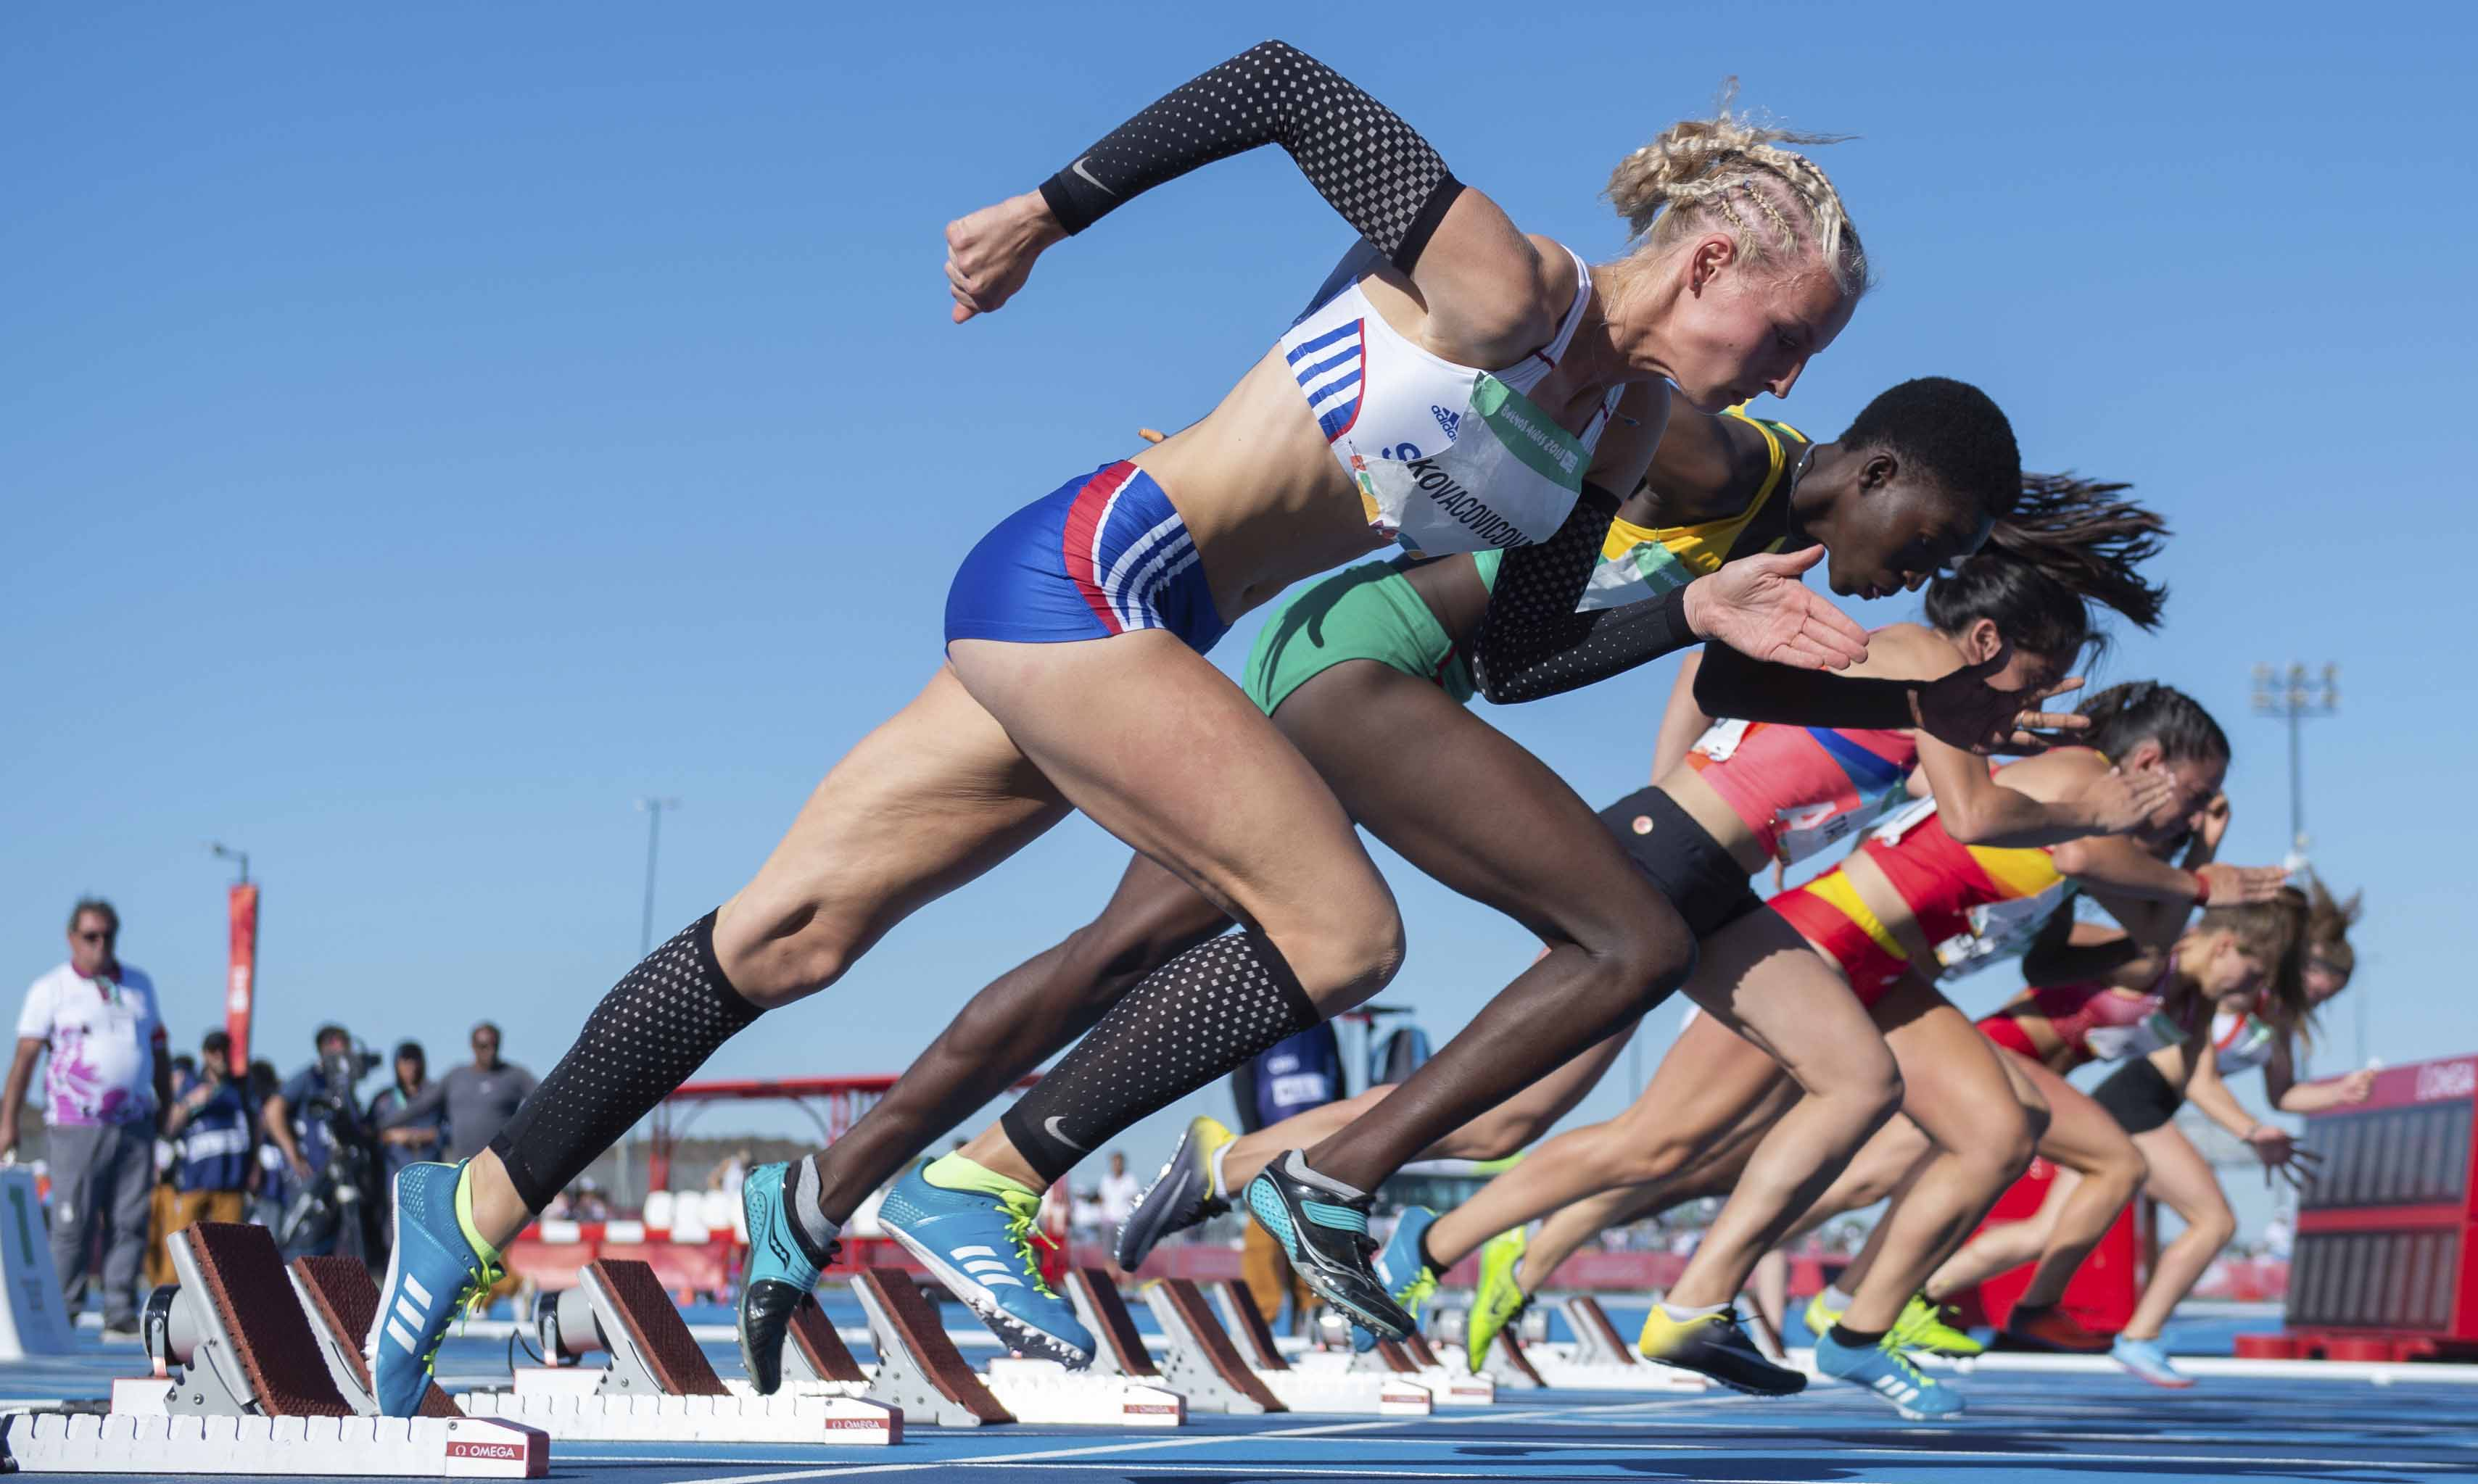 In this photo provided by OIS/IOC, Lenka Kovacovicova, of Slovakia (foreground) takes off at the start of the Athletics Women's 100-meter Stage 2 Heat 3, in Buenos Aires in Argentina on Monday.